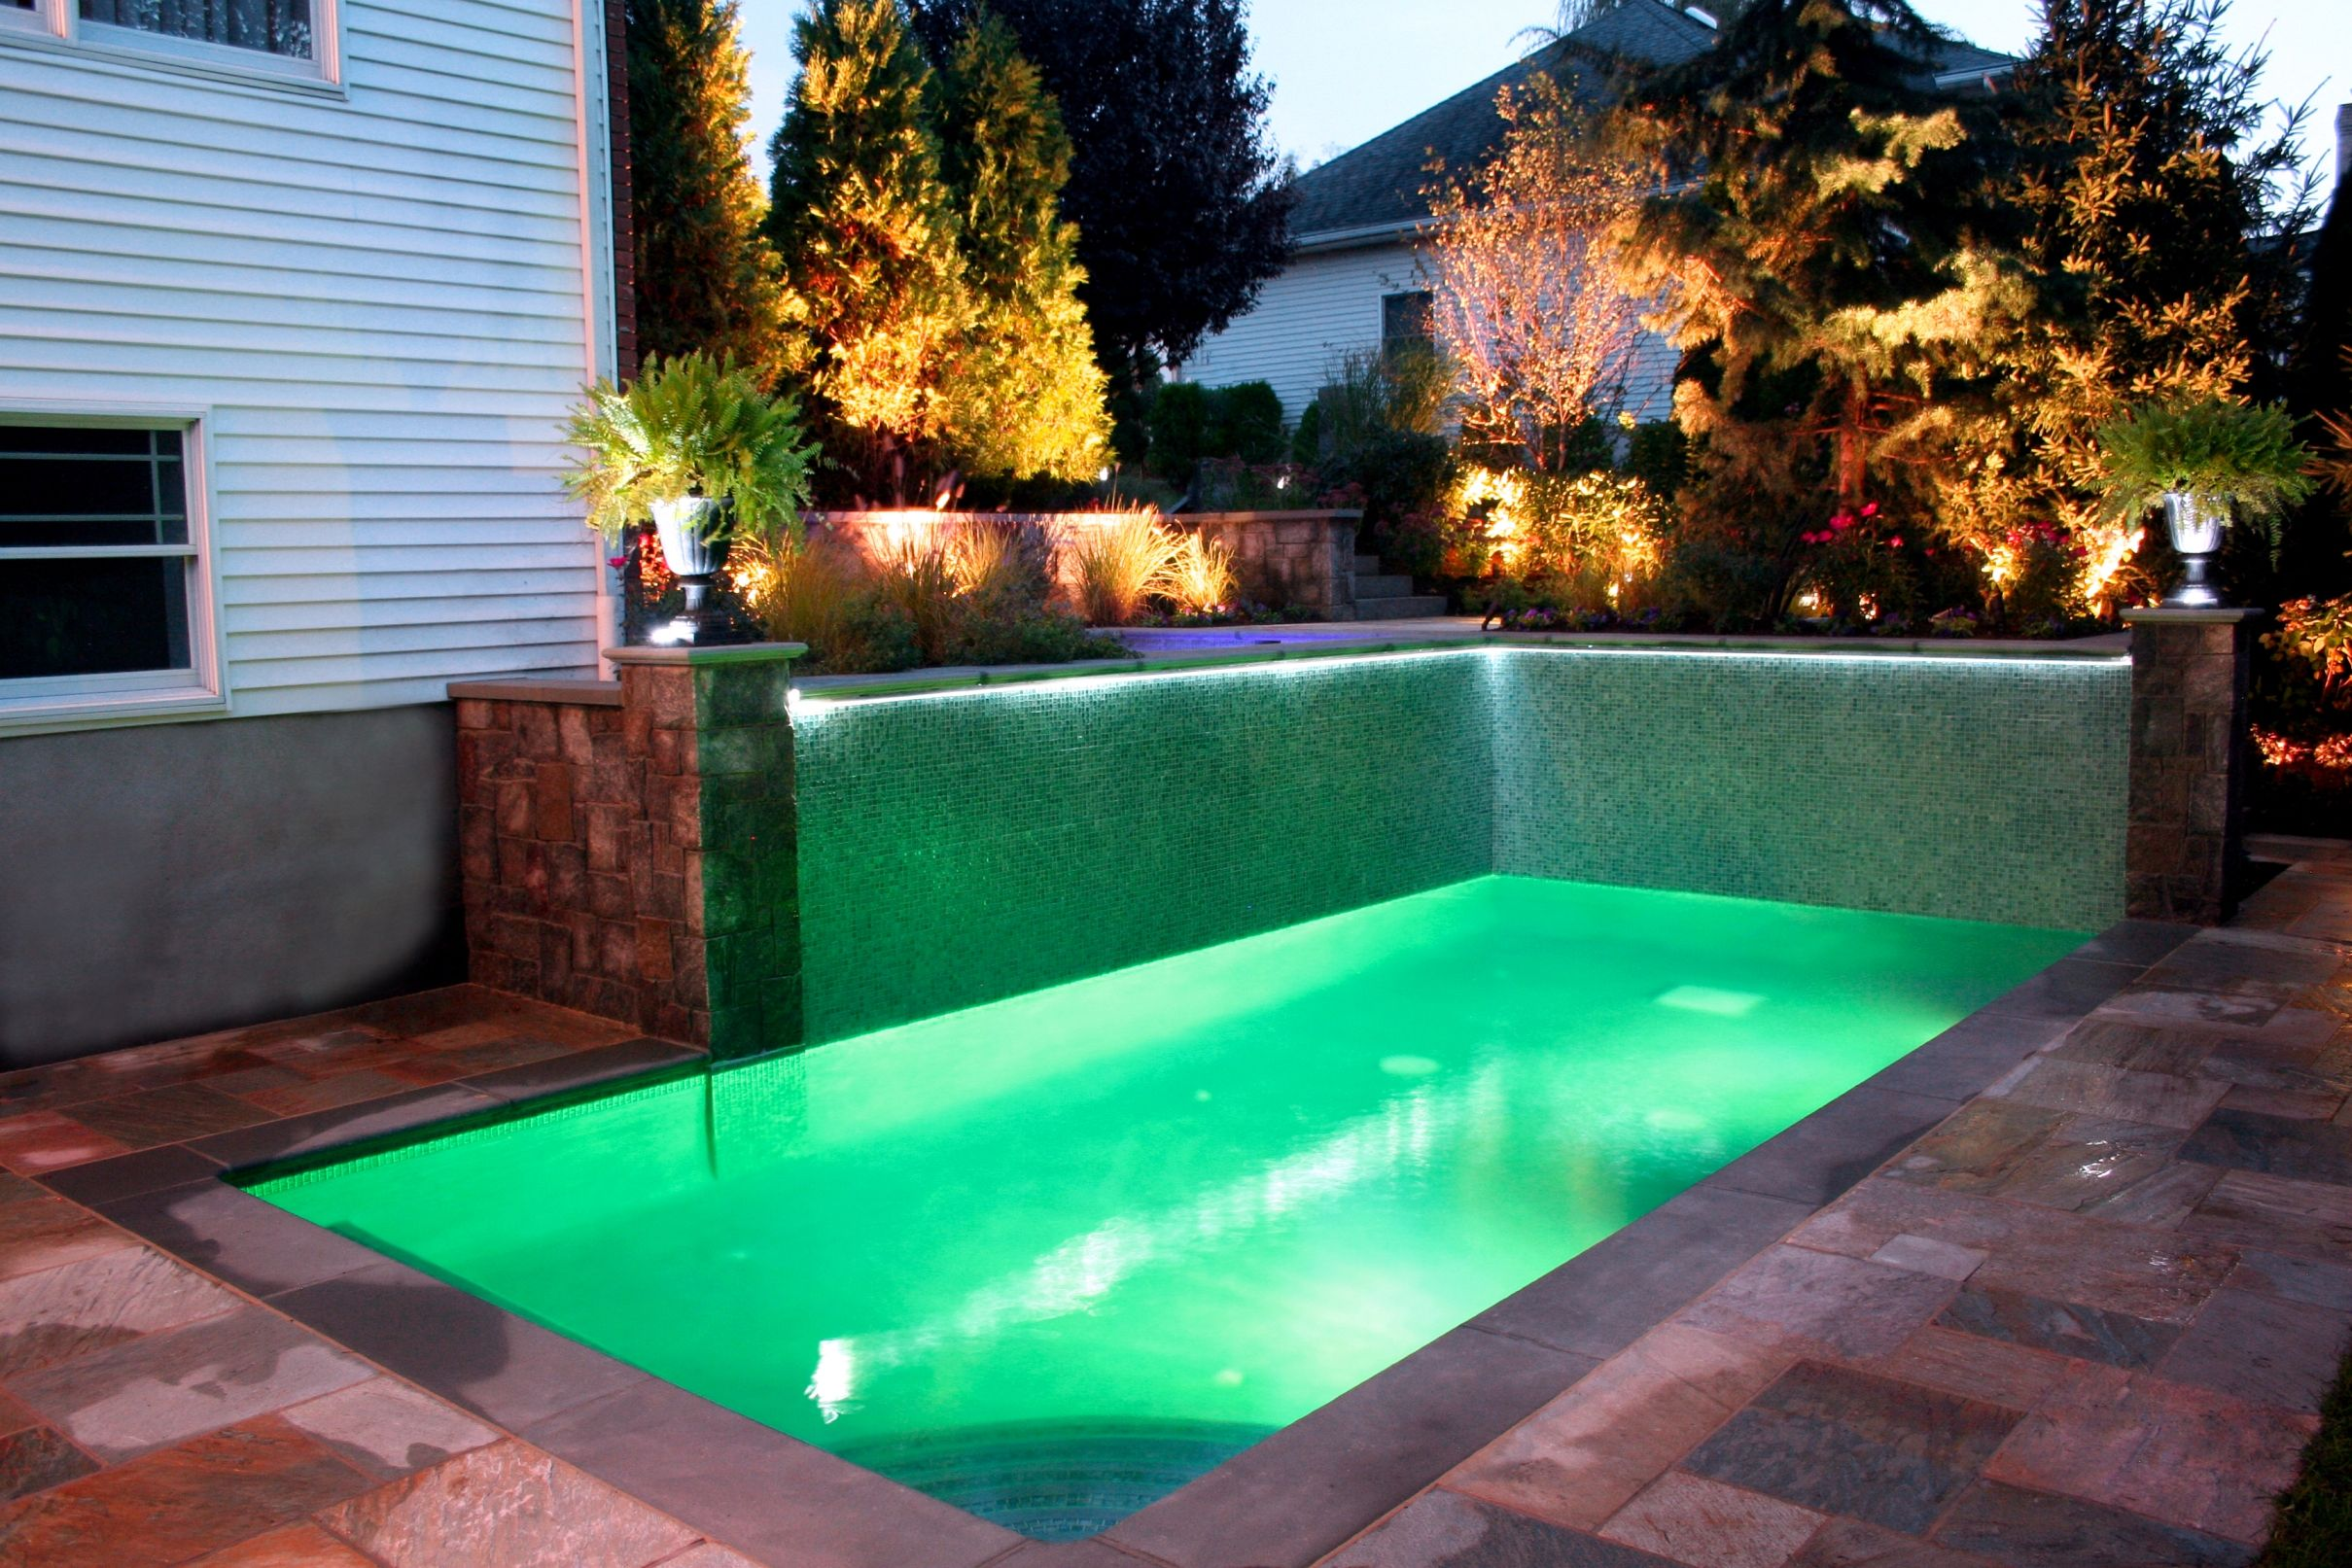 Genial 17 Tiny Pool For Small Yard Design Ideas